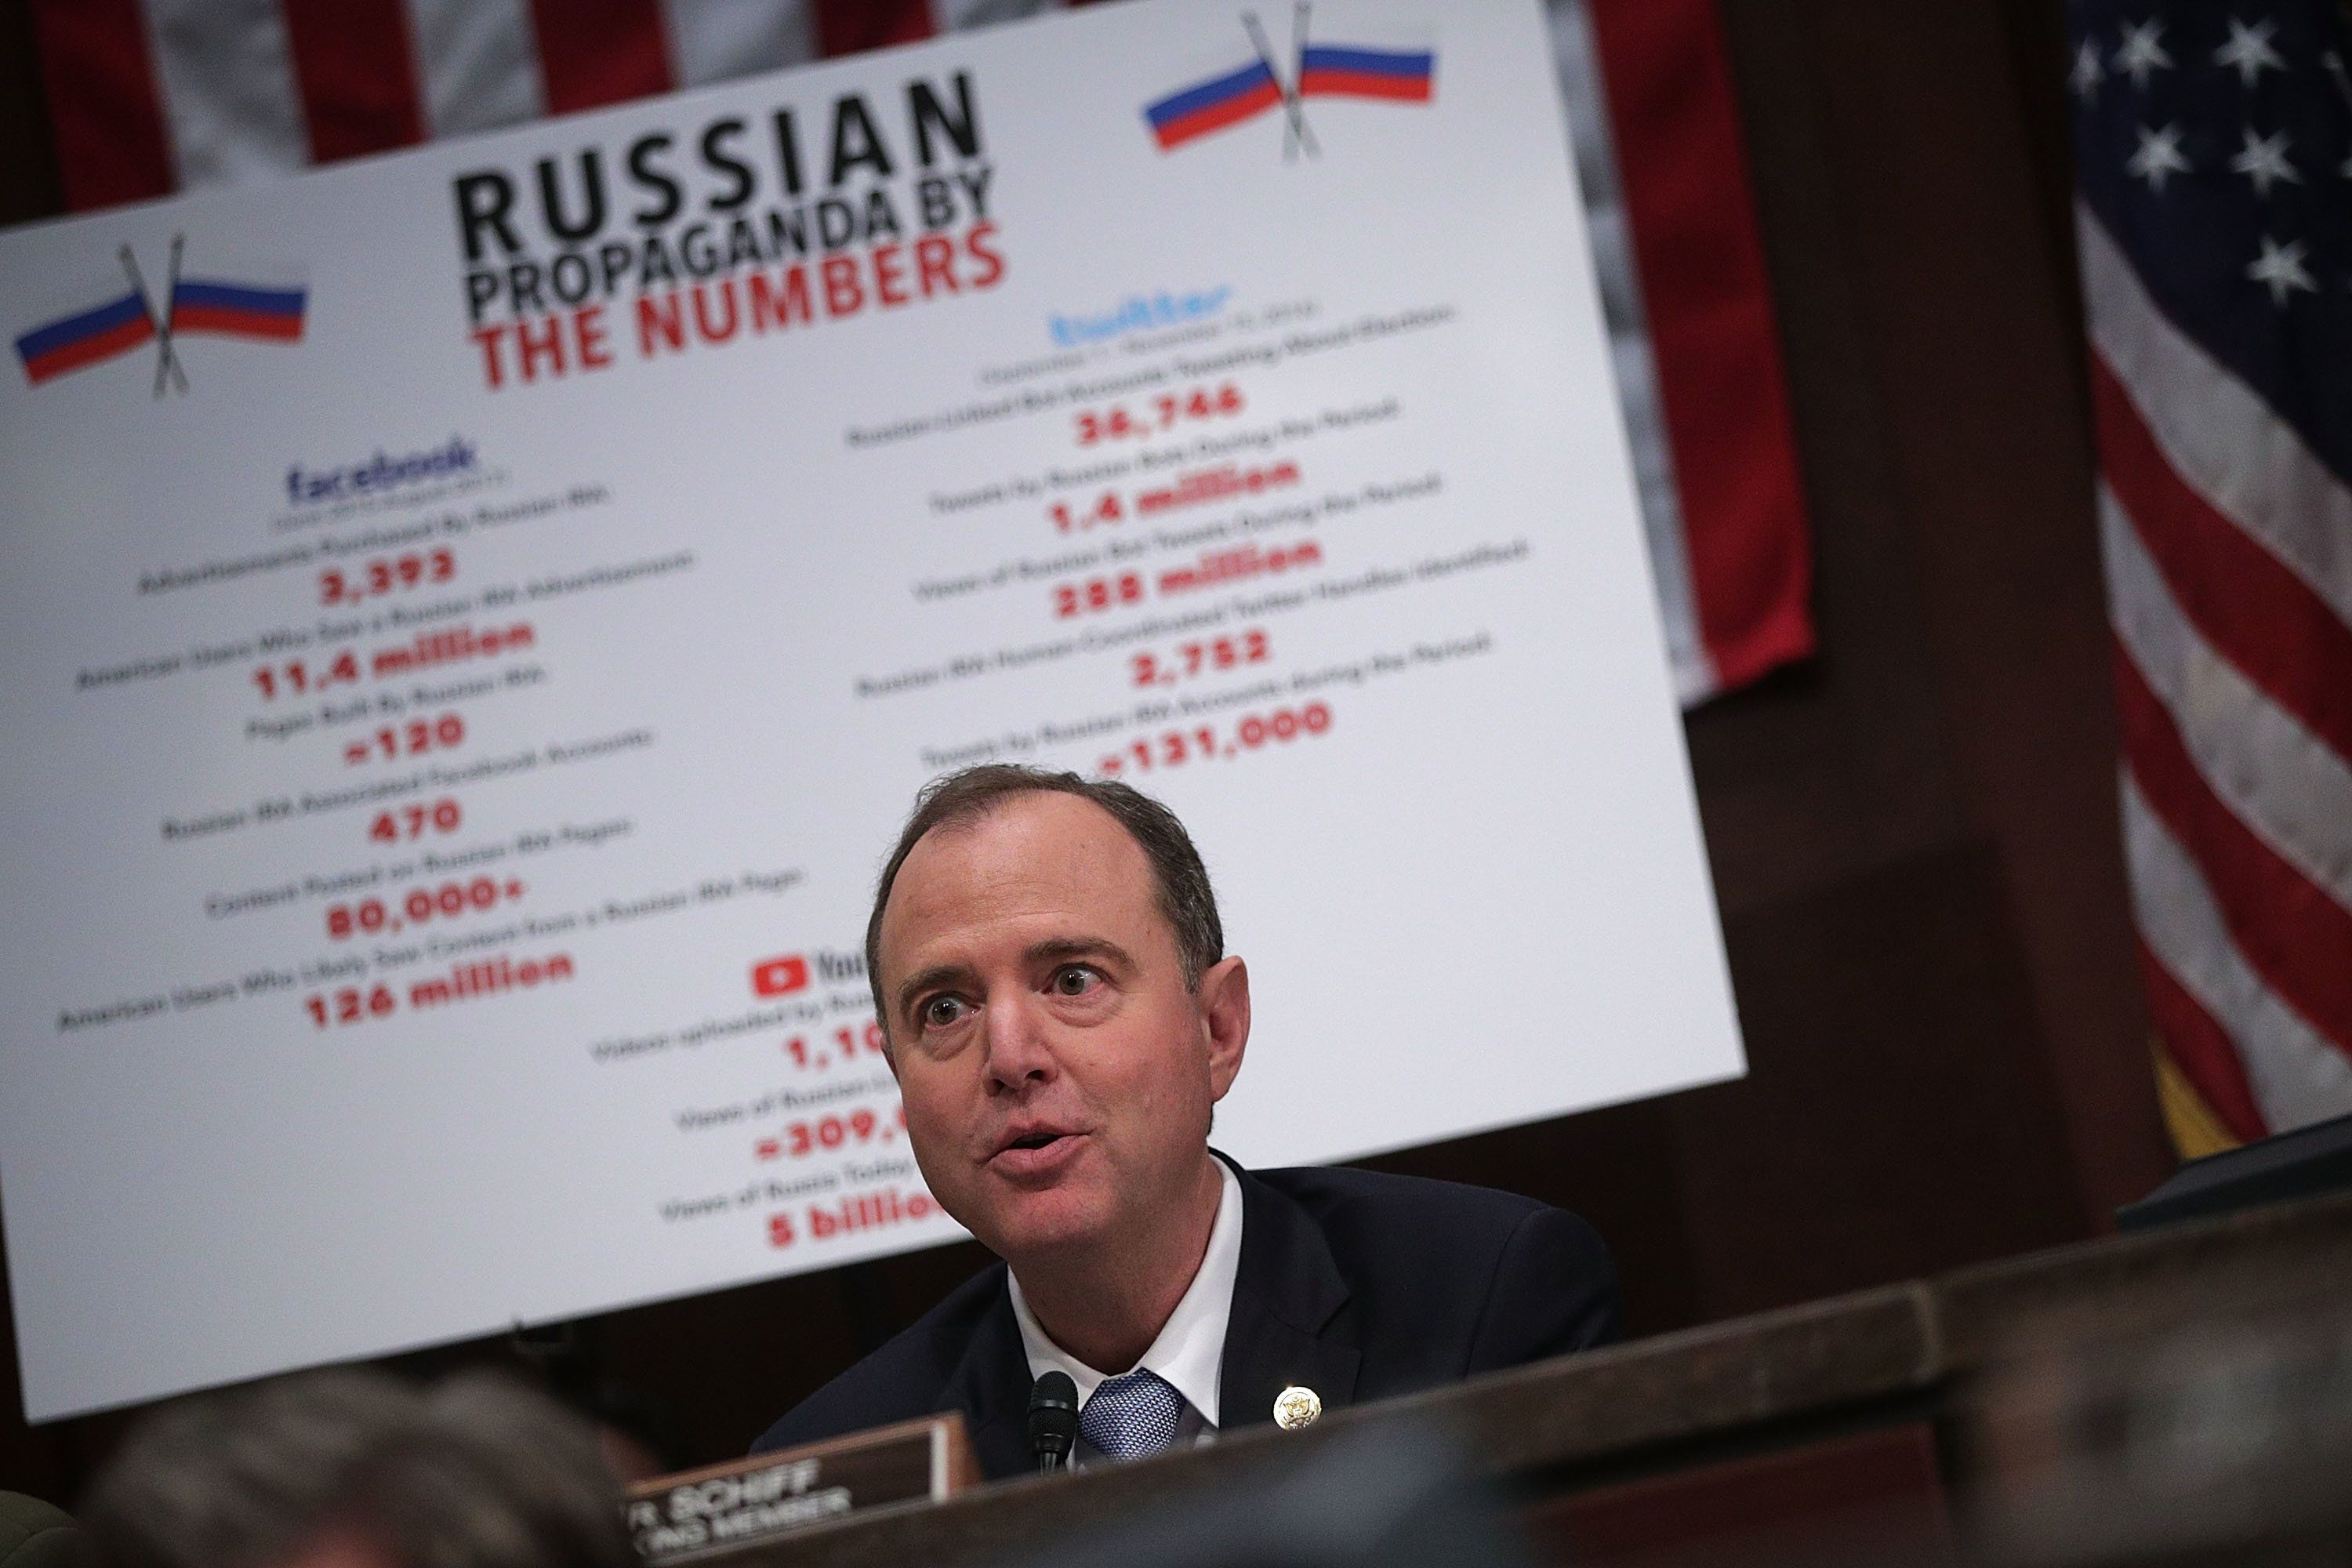 Rep. Schiff 'Worried' GOP Plans To Shut Down House Intel's Russia Probe